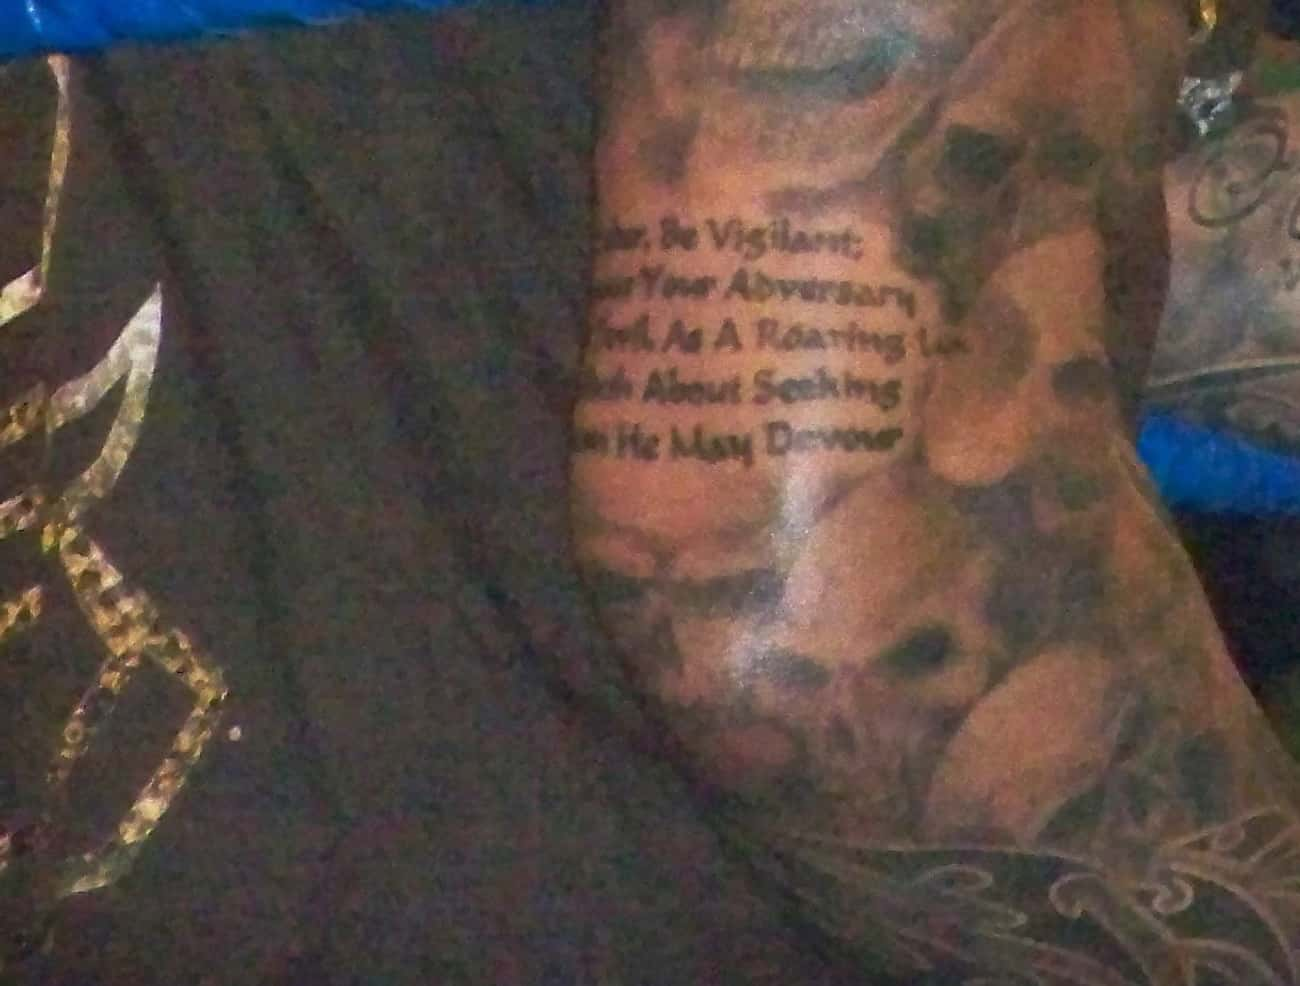 Bible Verse Tattoo is listed (or ranked) 4 on the list Randy Orton Tattoos